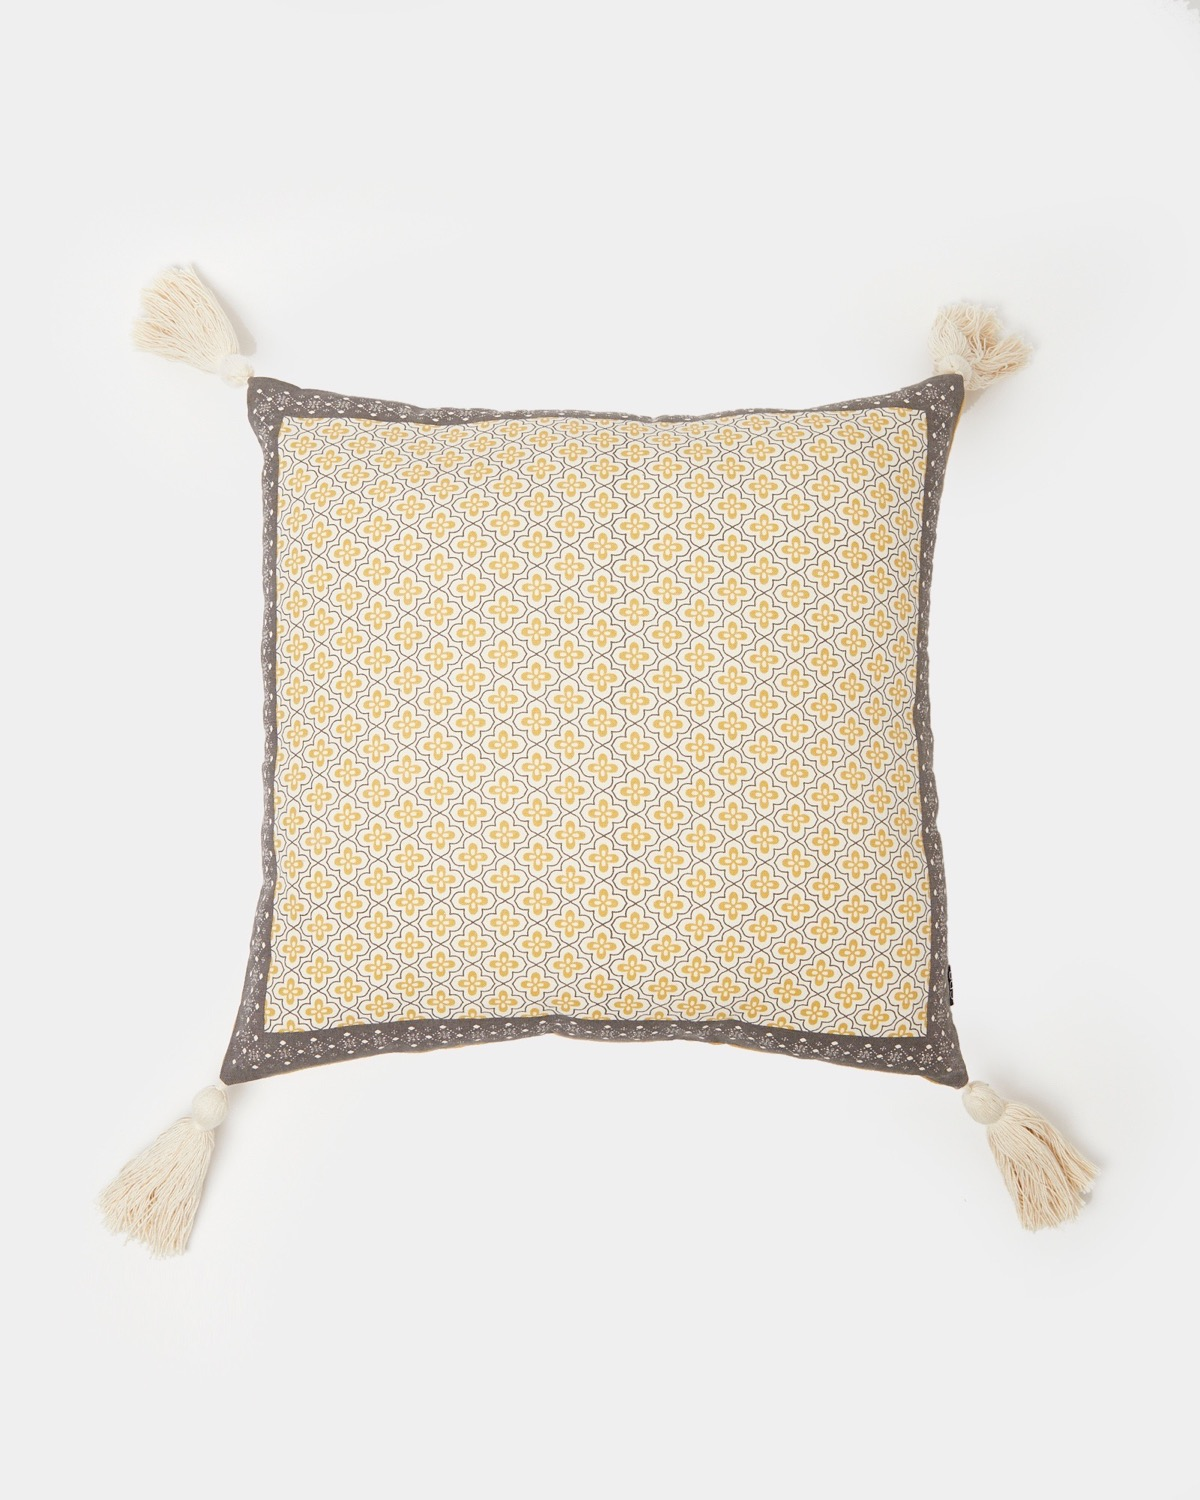 Carolyn Donnelly Eclectic Printed Square Cushion